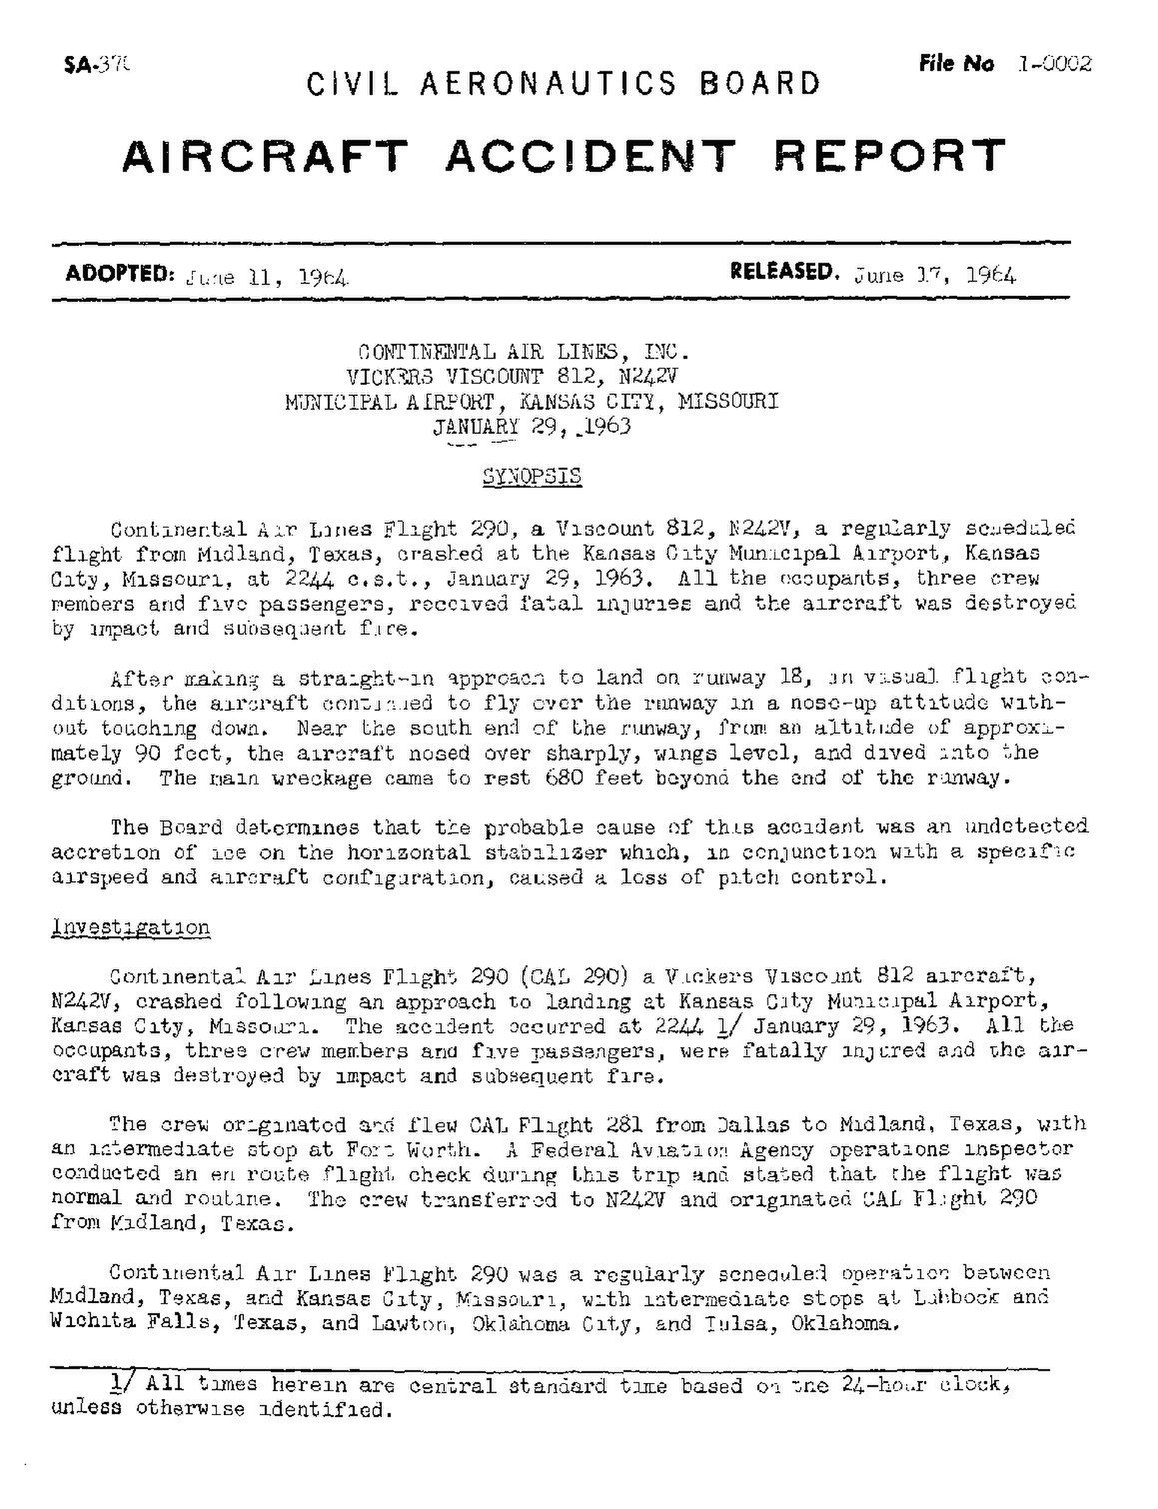 File:CAB Accident Report, Continental Airlines Flight 290